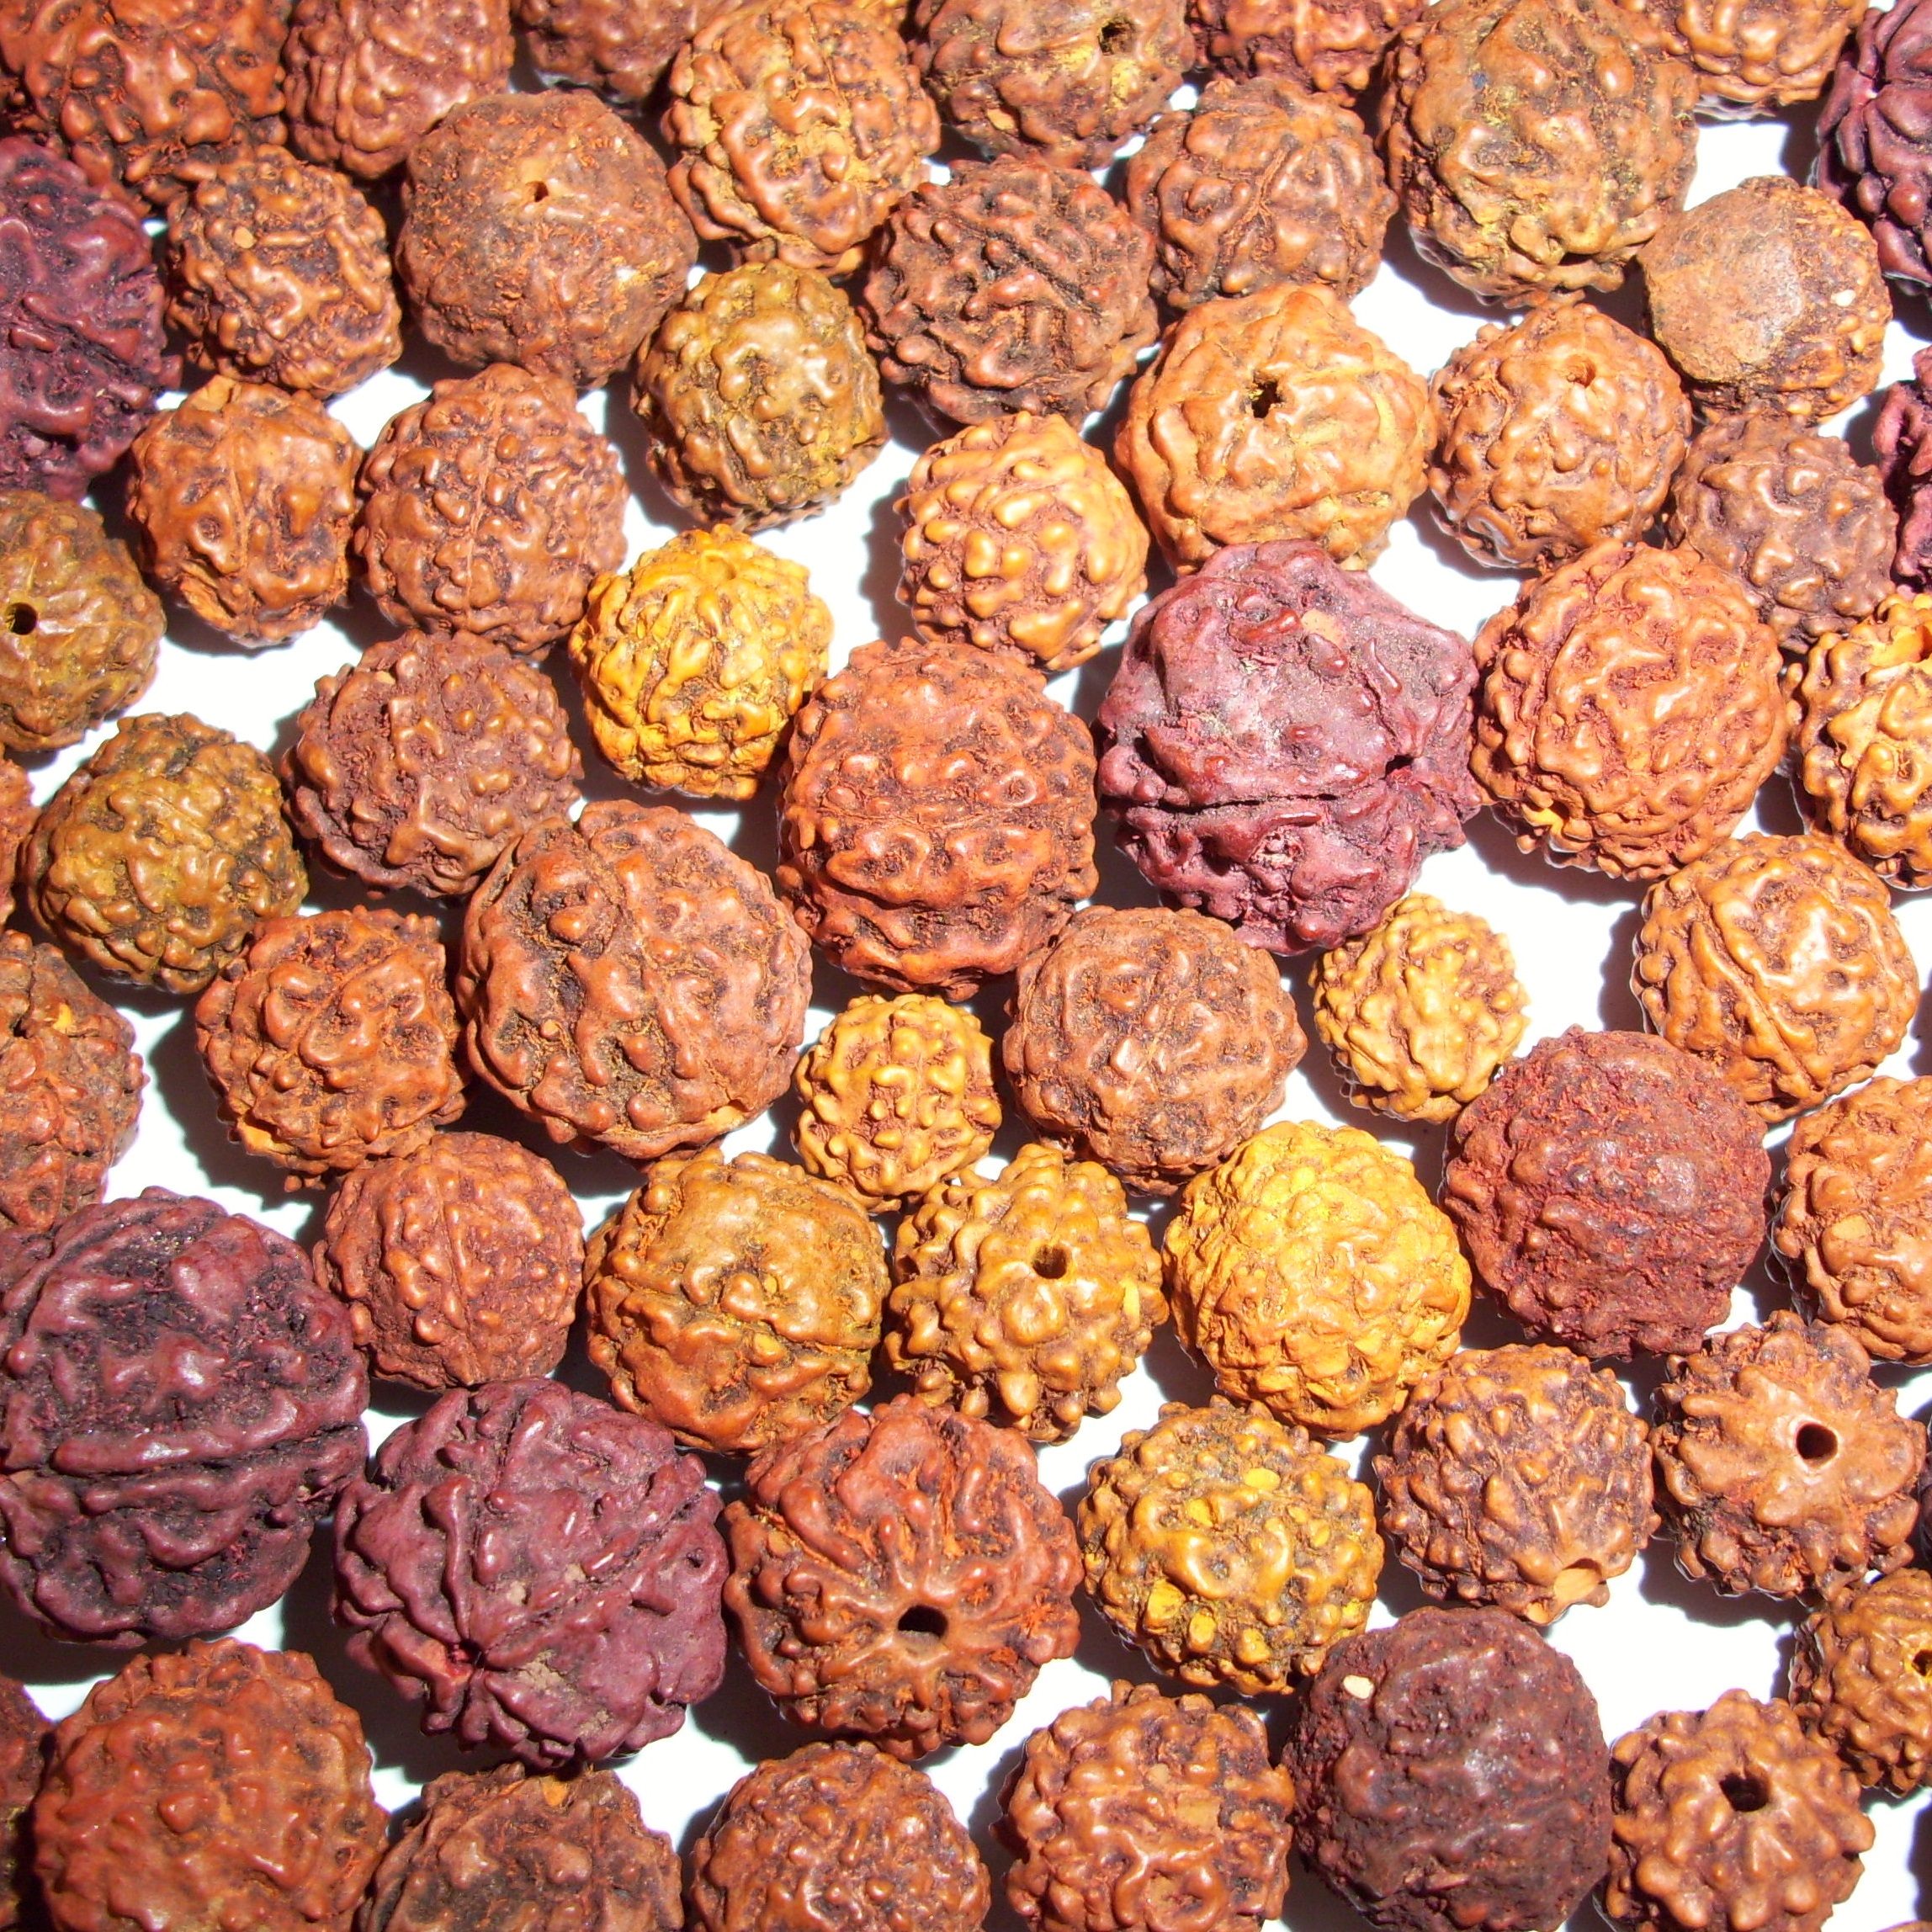 Benefits of Rudraksha Beads Rudraksha Malla Titusville Yoga Loft at The Titusville Yoga Loft Downtown Titusville Yoga Studio, Yoga For Beginners, Hatha Yoga, Vinyasa Yoga, Ashtanga Yoga, Yin Yoga, Kids Yoga, Meditation, Barre, Titusville Yoga.jpeg